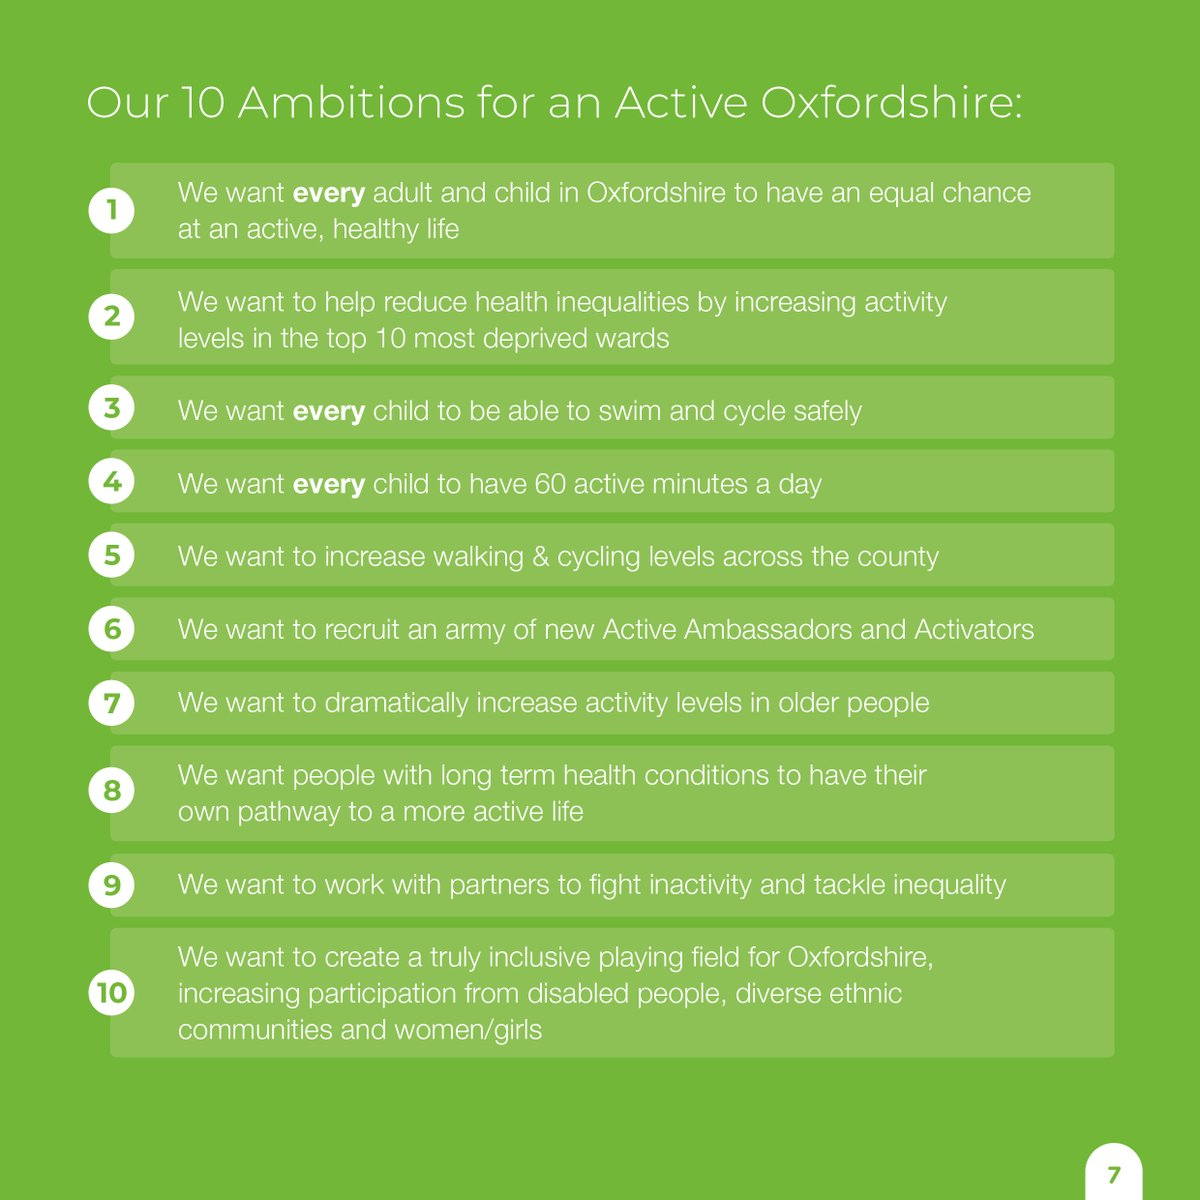 We've outlined our 10 Ambitions for an Active Oxfordshire below. But we can't do this alone. Will you join us in creating a truly inclusive #Oxfordshire, where every adult and child can enjoy an active, healthy life? Find out how here 👇 https://t.co/45JWWwyG3W